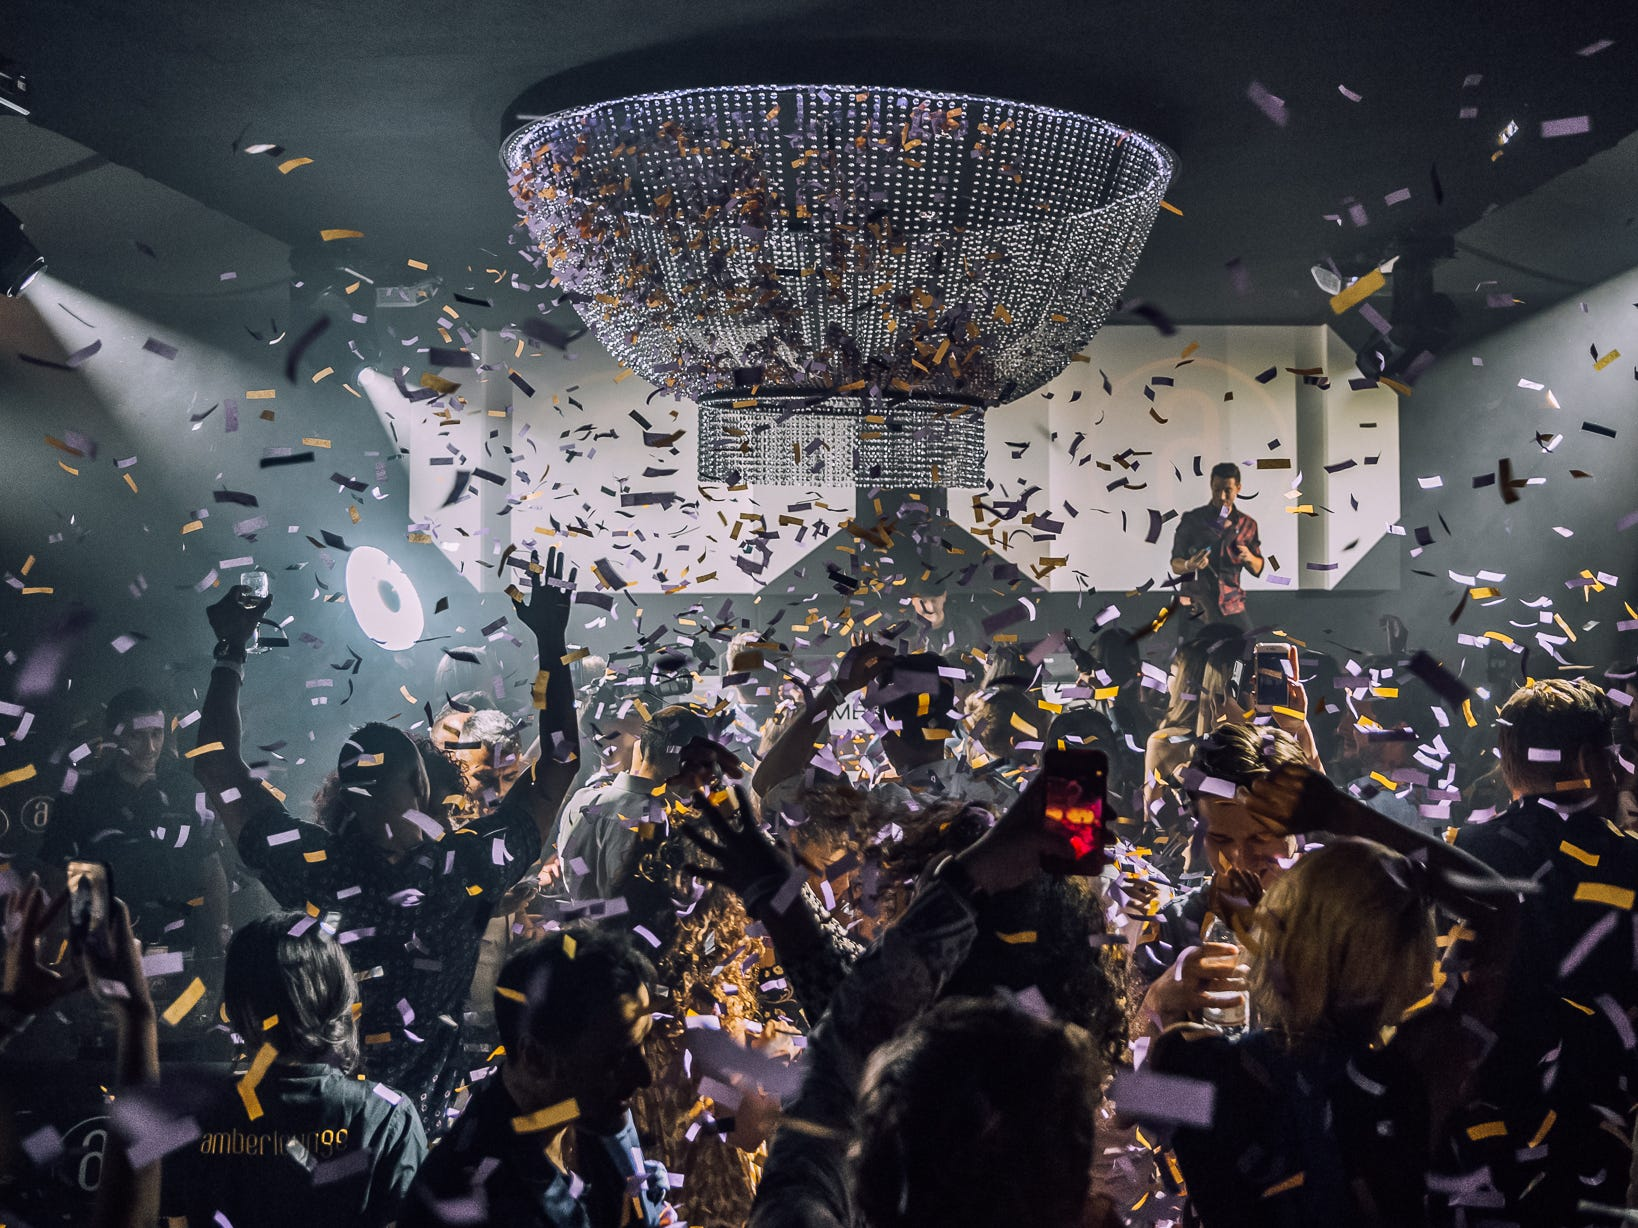 F1 after parties are part of the F1 experienceer Lounge might cost you $35,000 for an F1 weekend. (Image: Amber Lounge)